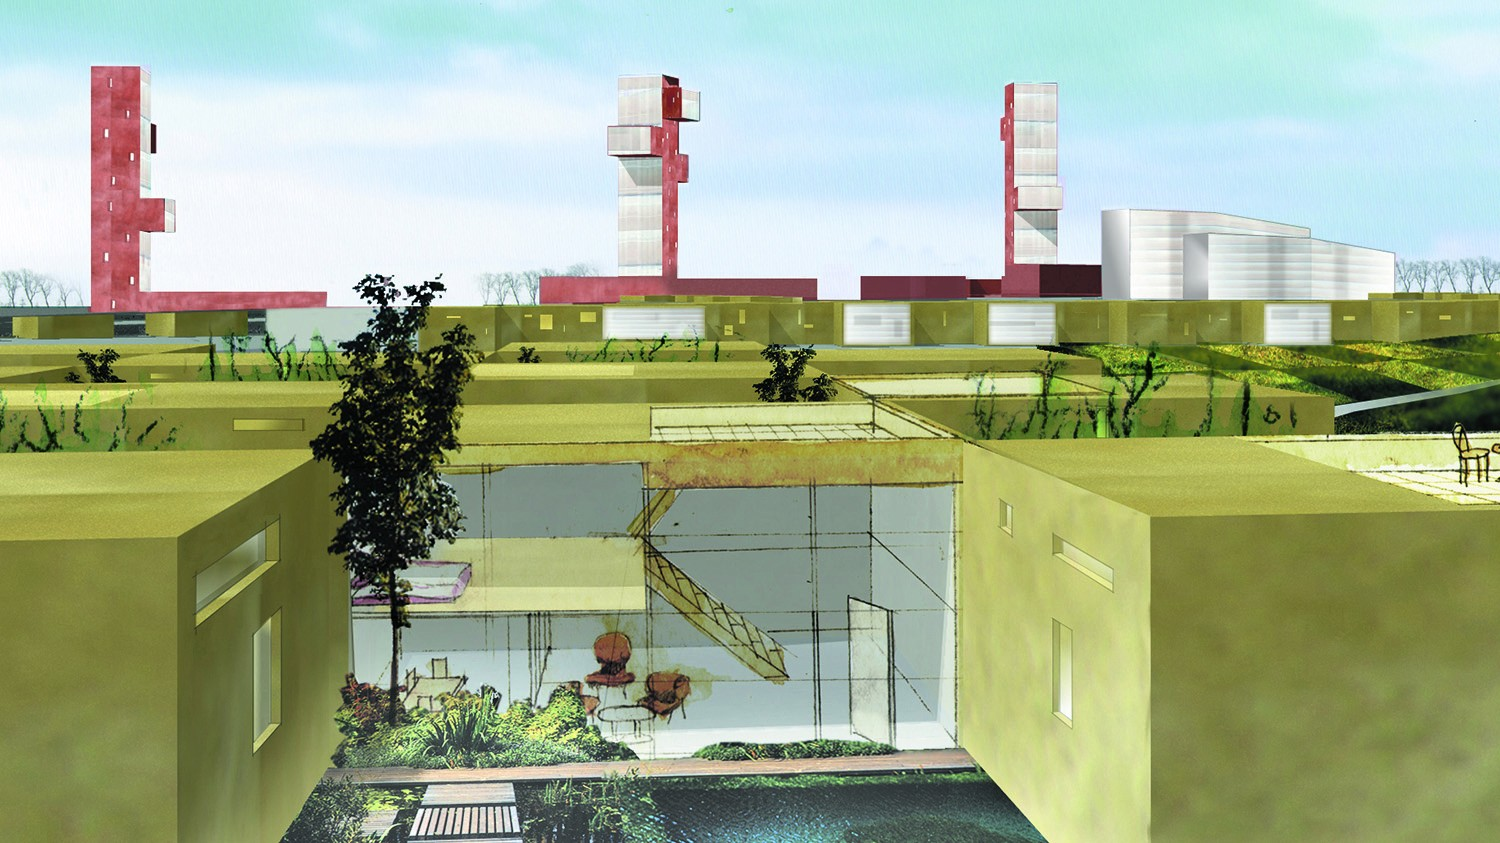 https://stevenholl.sfo2.digitaloceanspaces.com/uploads/projects/project-images/StevenhollArchitects_Toolenburg_overthecheckers_WH.jpg